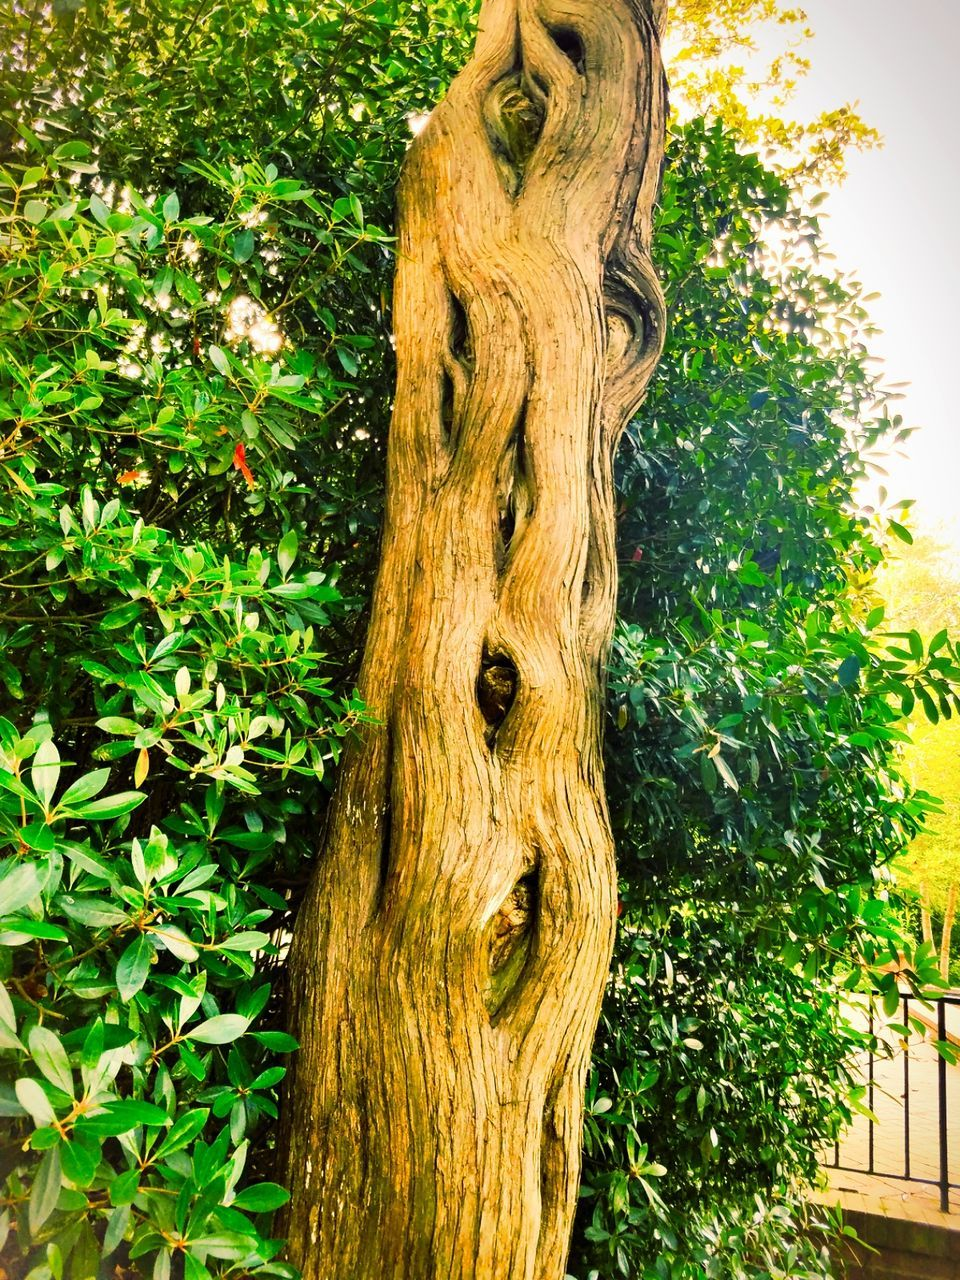 tree, tree trunk, nature, growth, no people, green color, plant, day, outdoors, branch, close-up